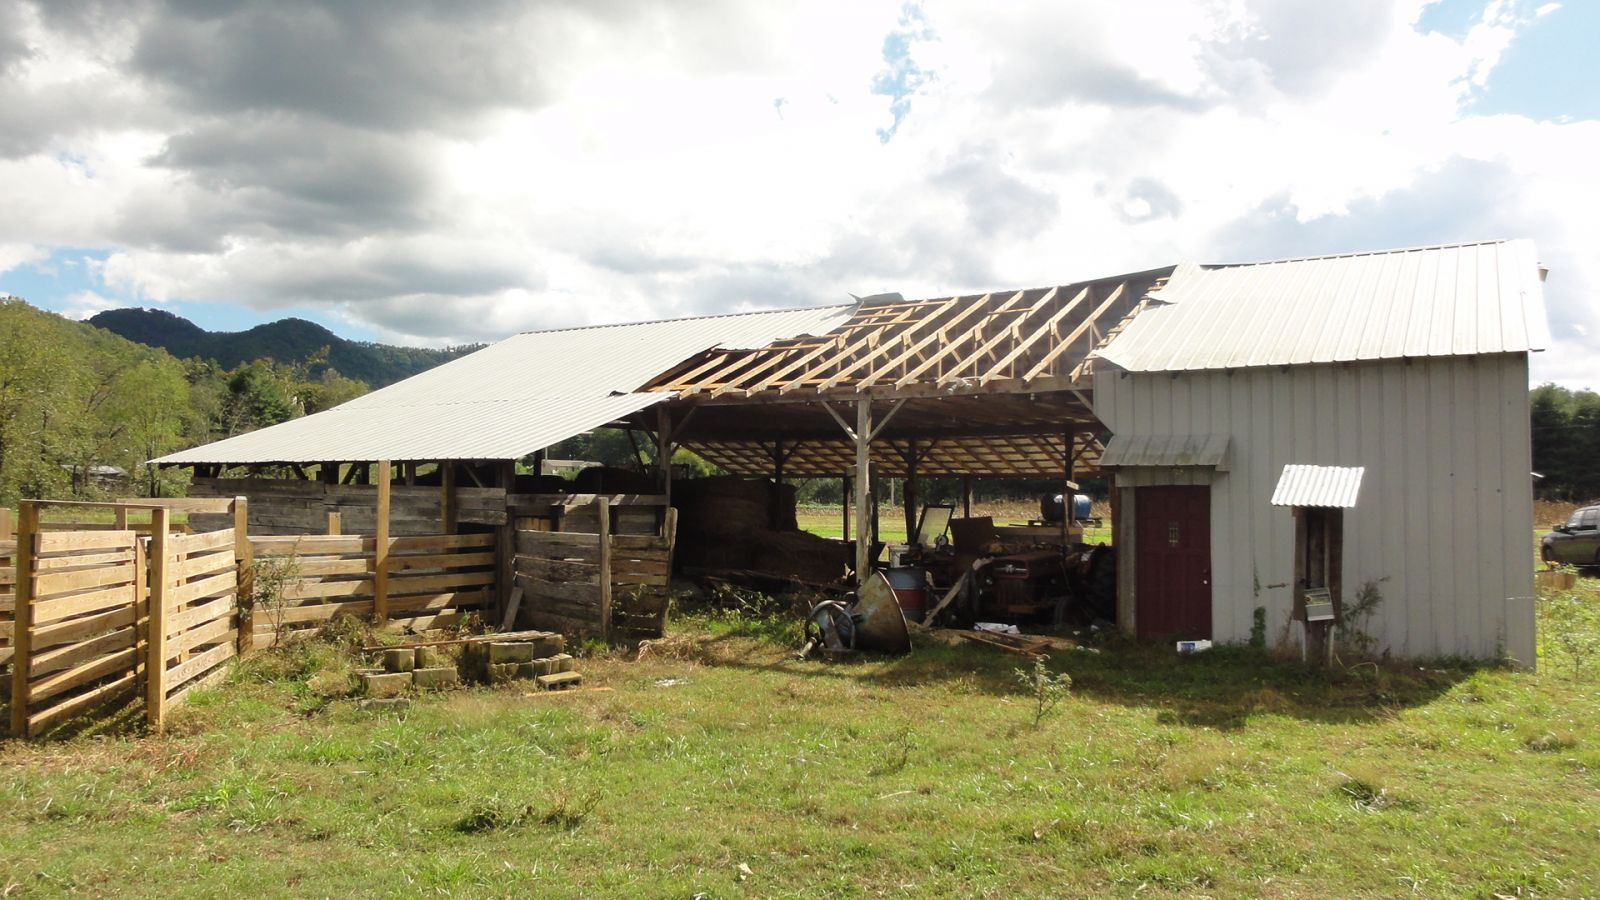 Roof damage to an outbuilding in the evening of 14 October 2014, in McDowell County, North Carolina